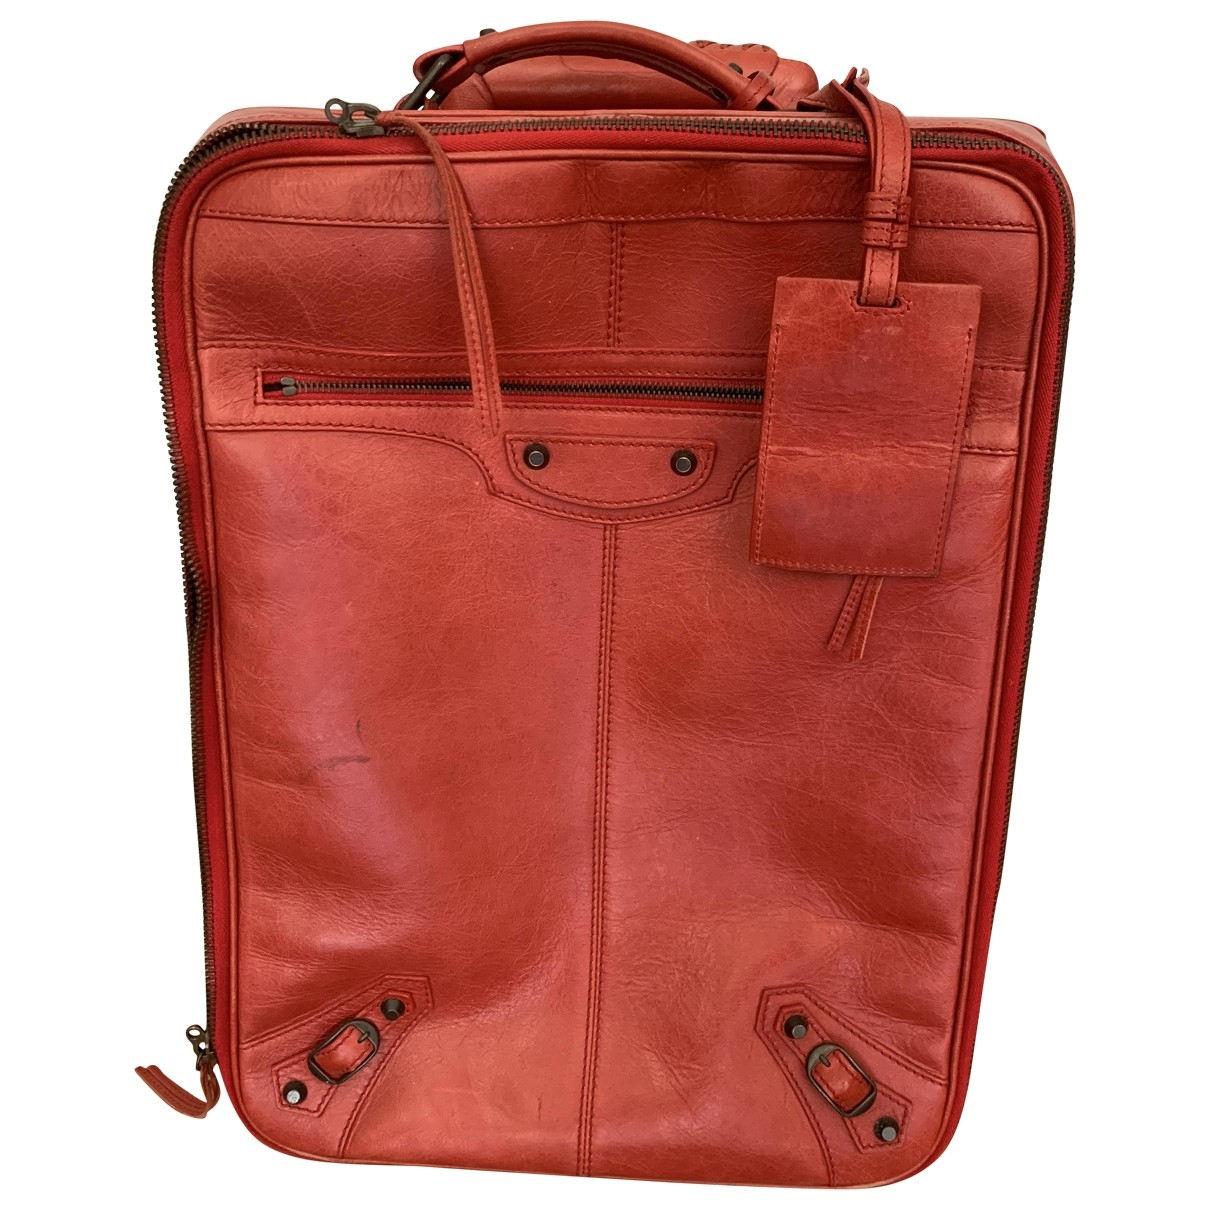 Balenciaga \N Red Leather Travel bag for Women \N